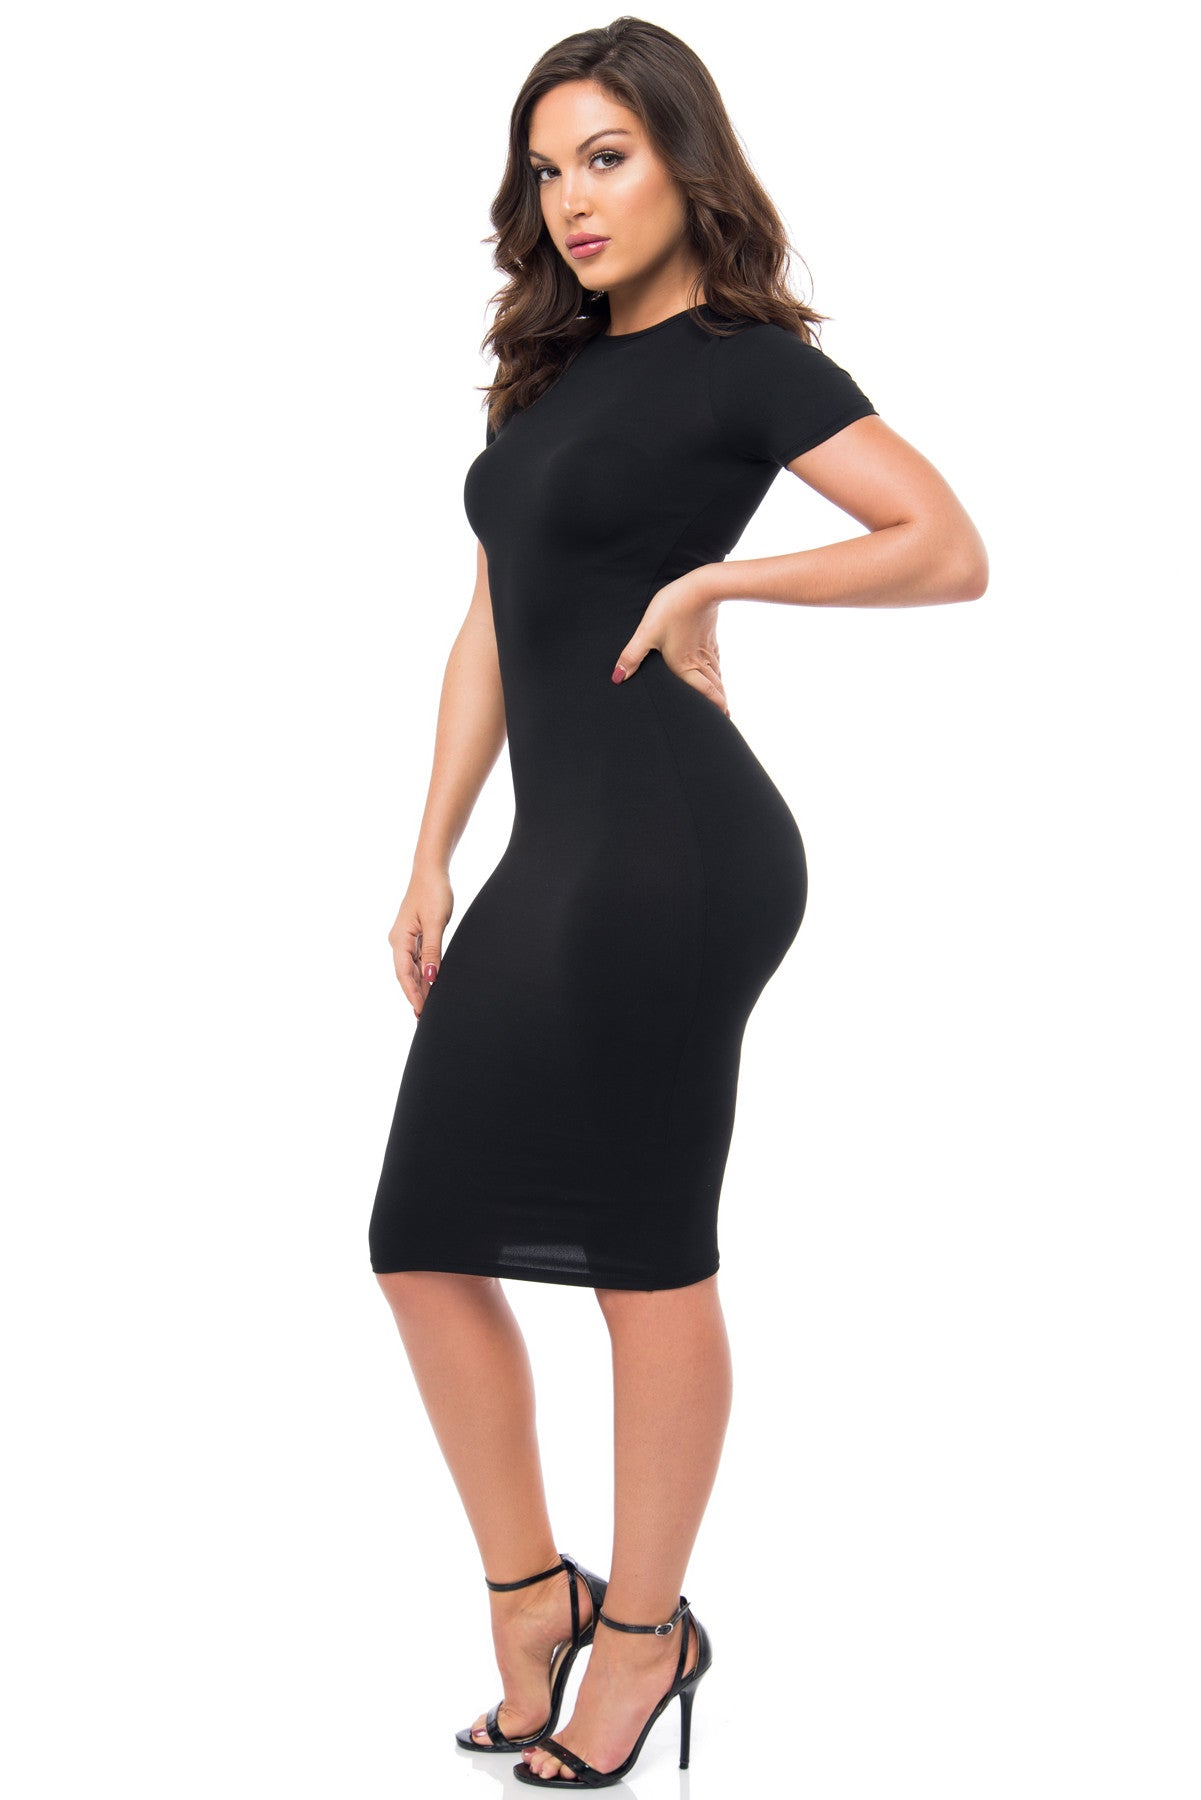 You Belong To Me Black Dress - Fashion Effect Store  - 3